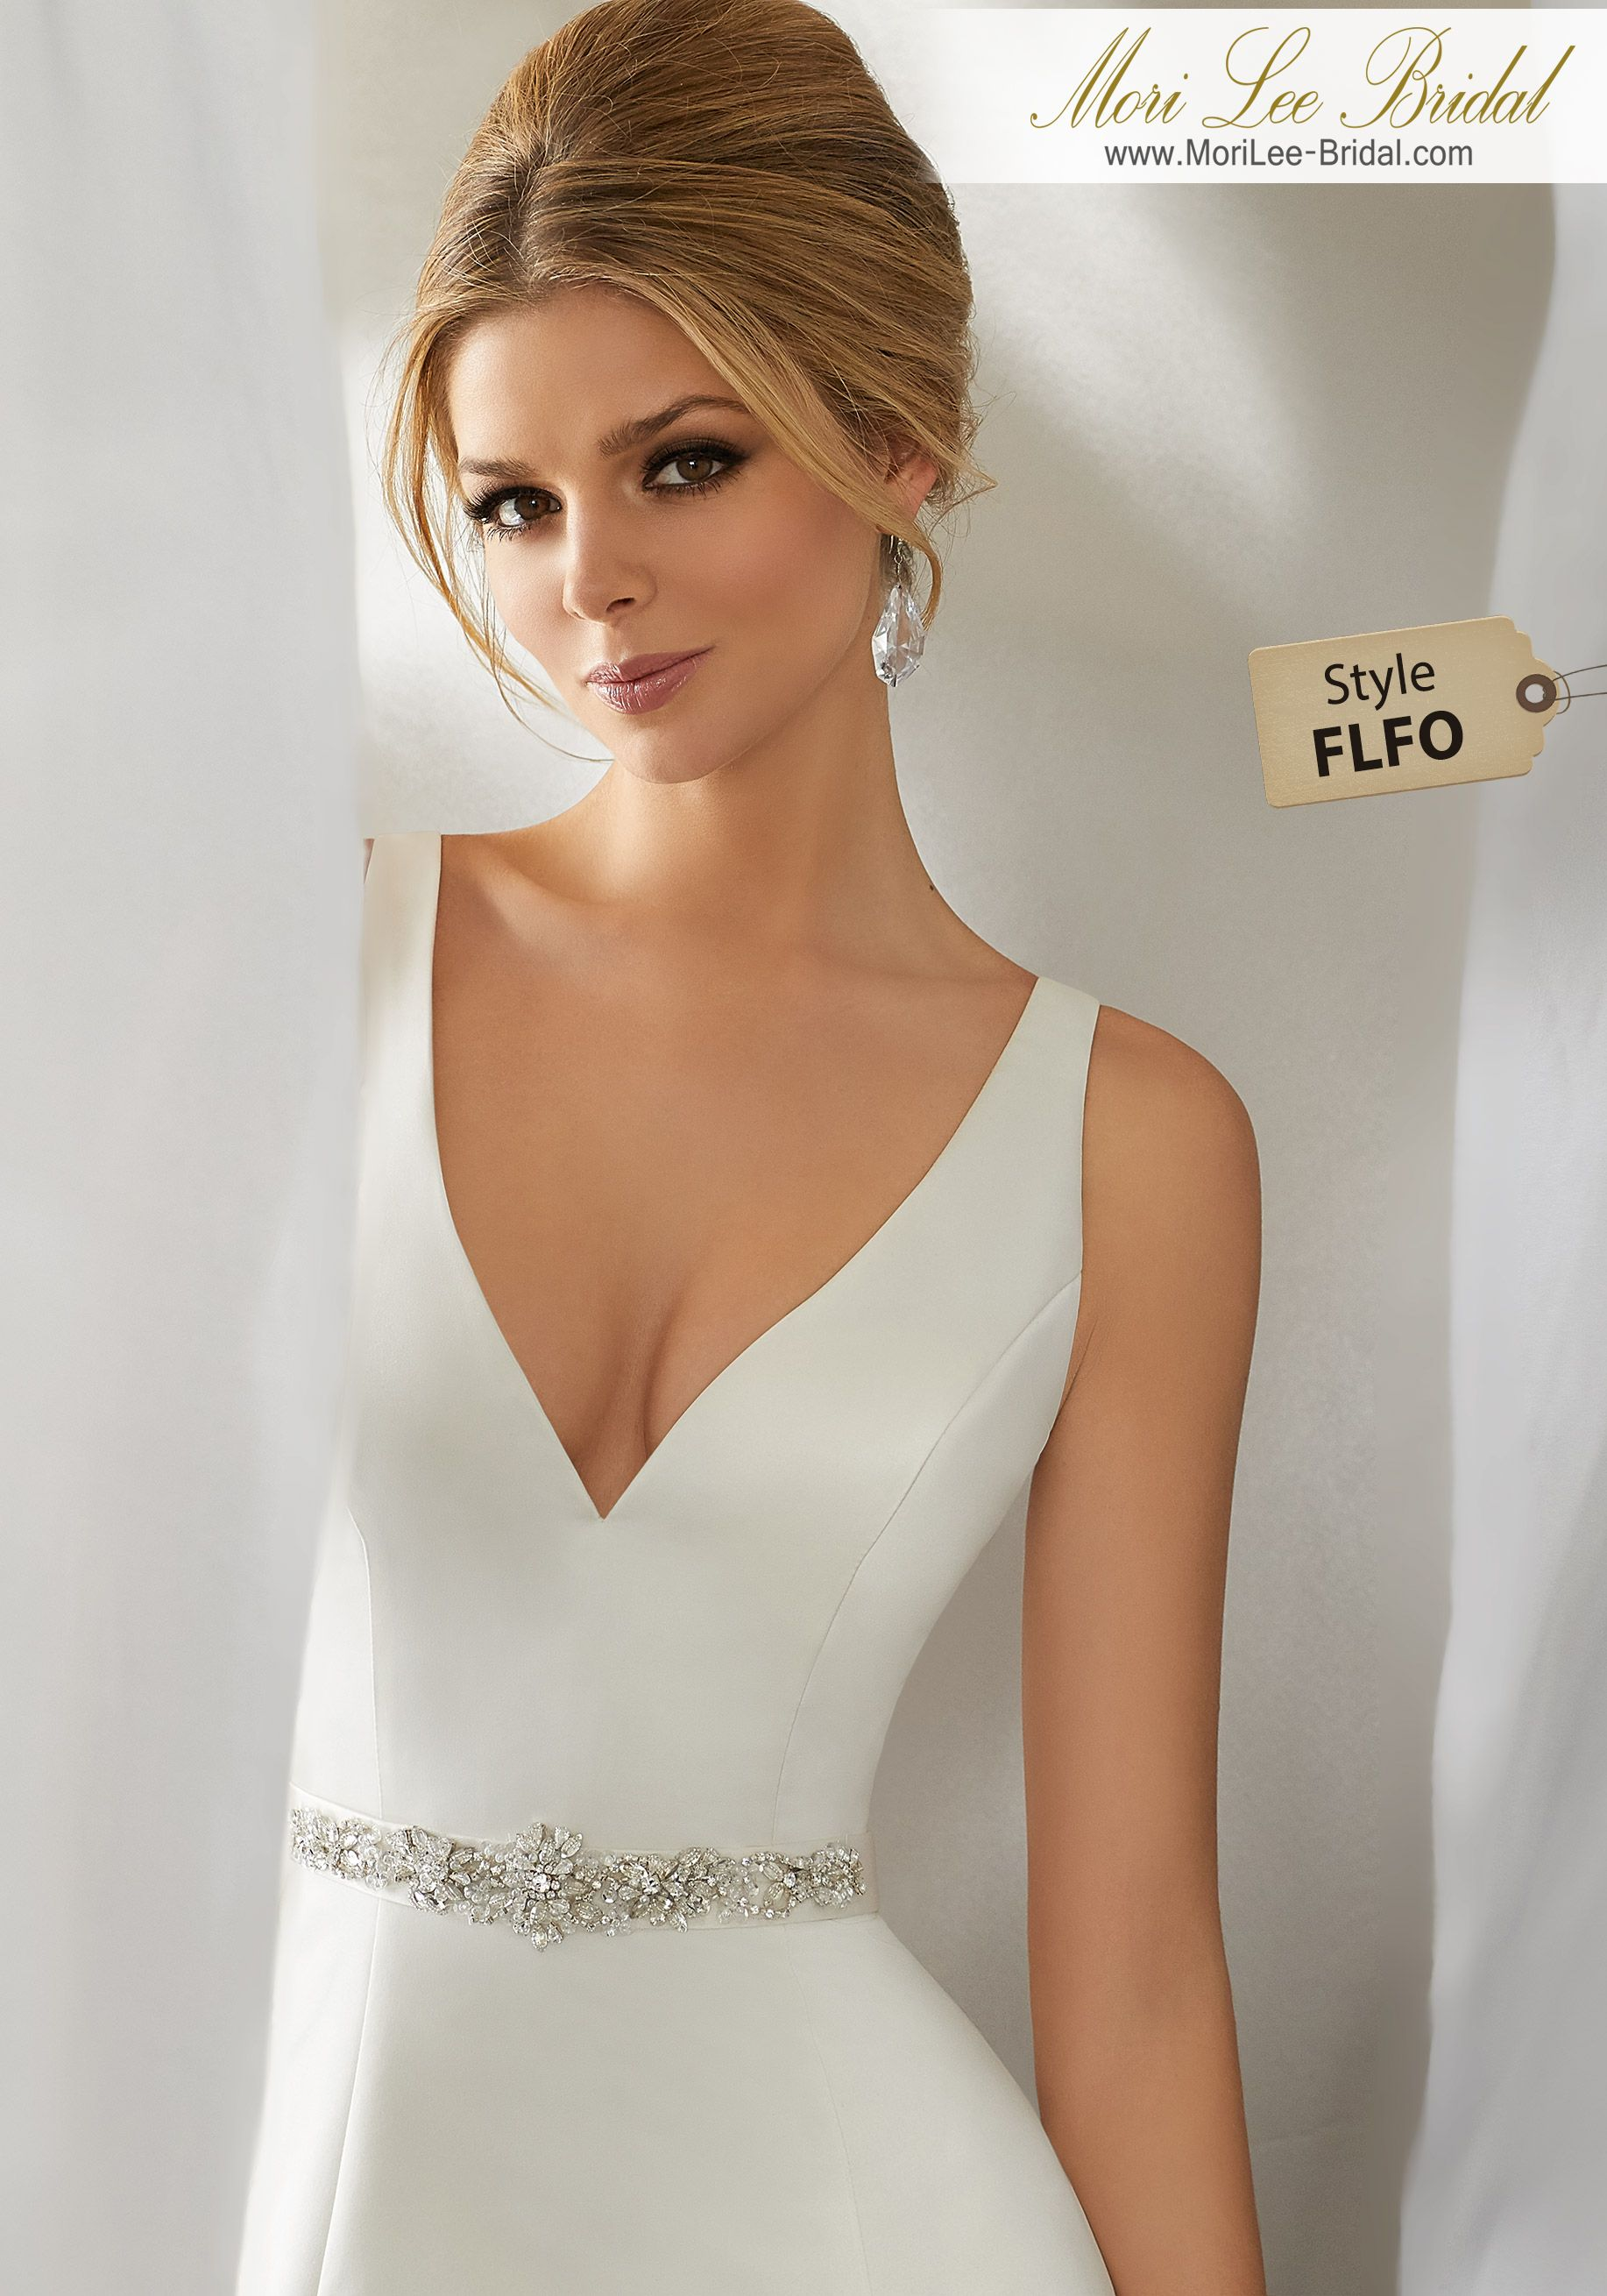 Style flfo morena wedding dress classic and timeless this duchess